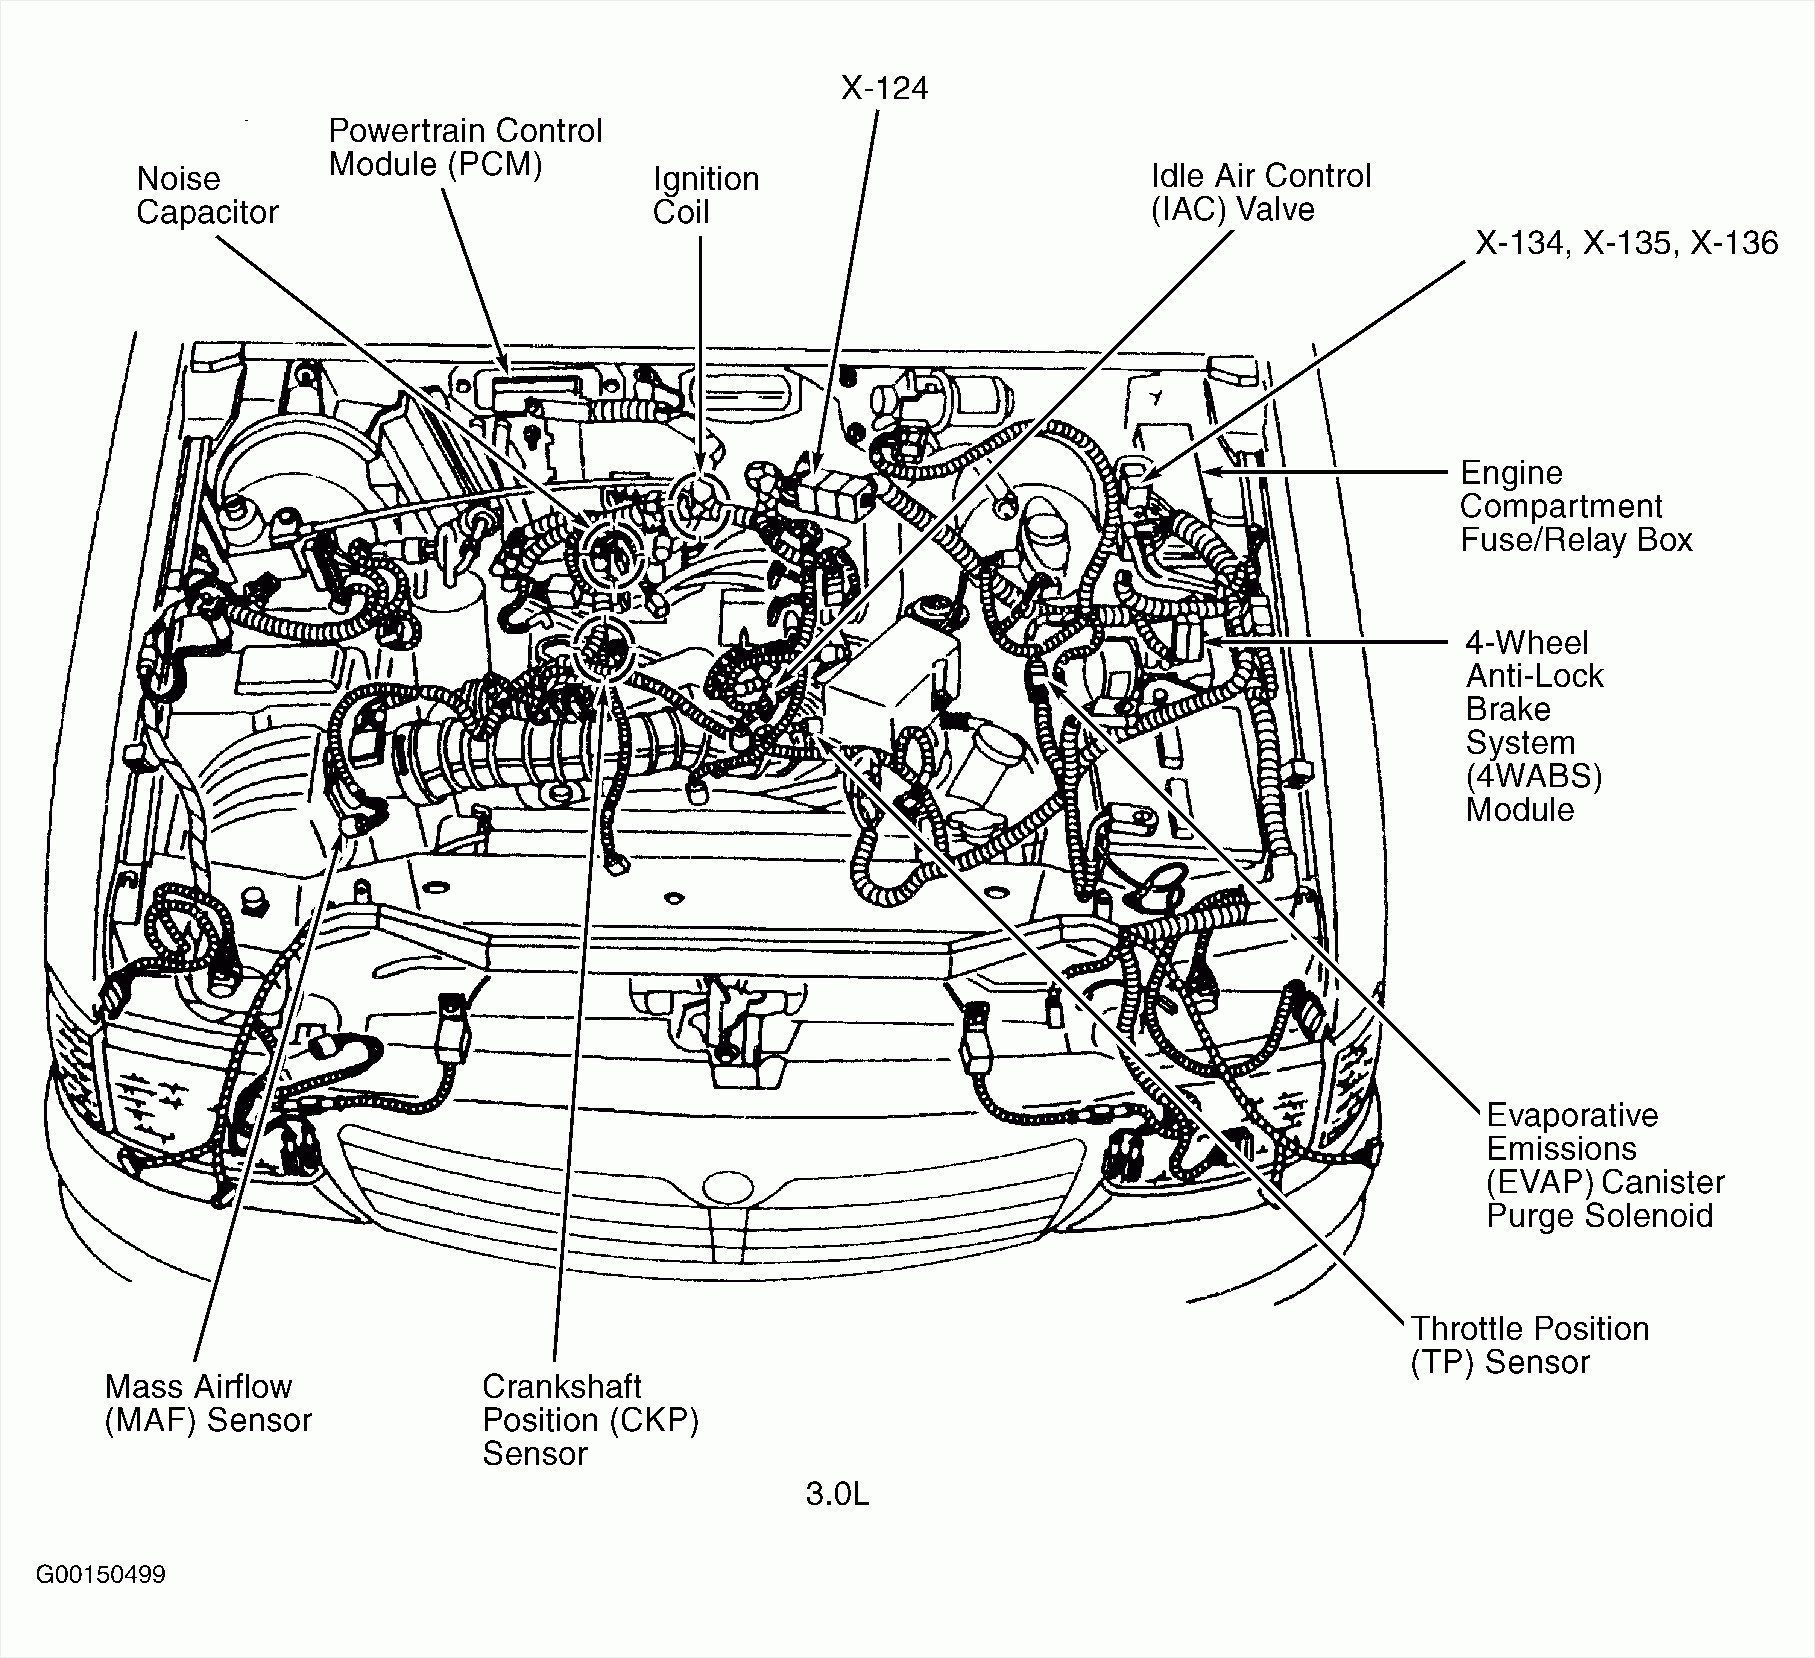 2003 Mitsubishi Outlander Engine Diagram Mitsubishi Eclipse Spyder Engine Bay Diagram Wiring Diagram Datasource Of 2003 Mitsubishi Outlander Engine Diagram